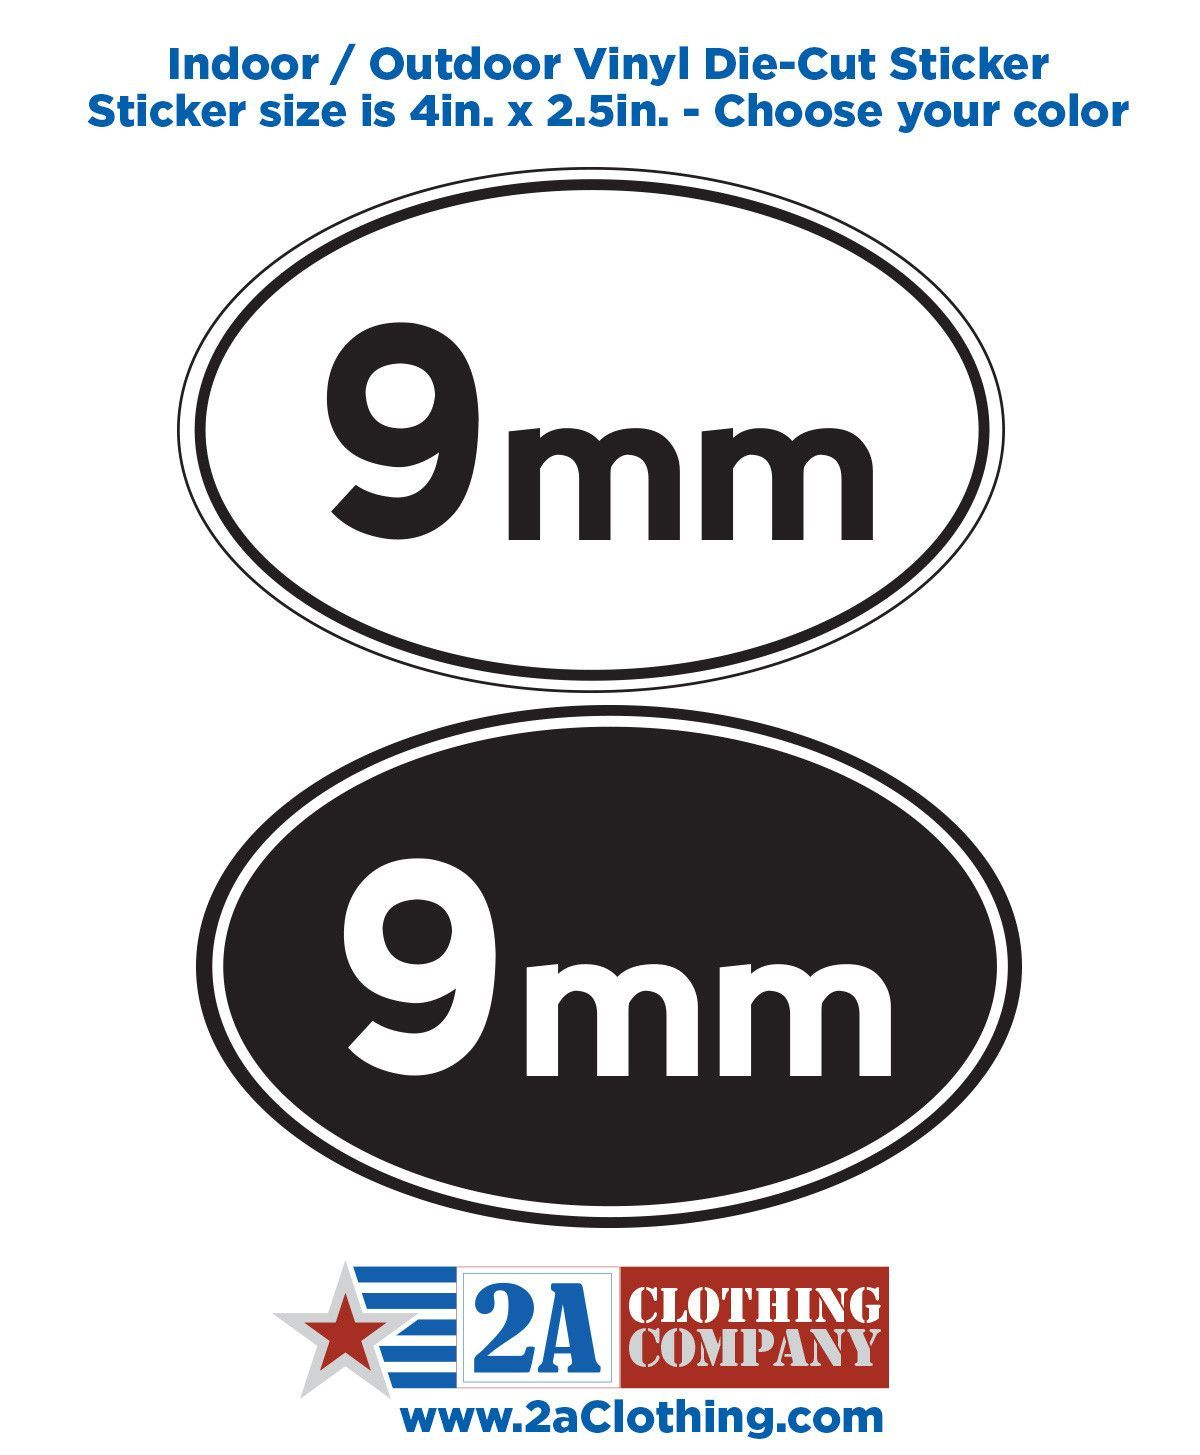 9mm oval sticker stickers stickers prints logos